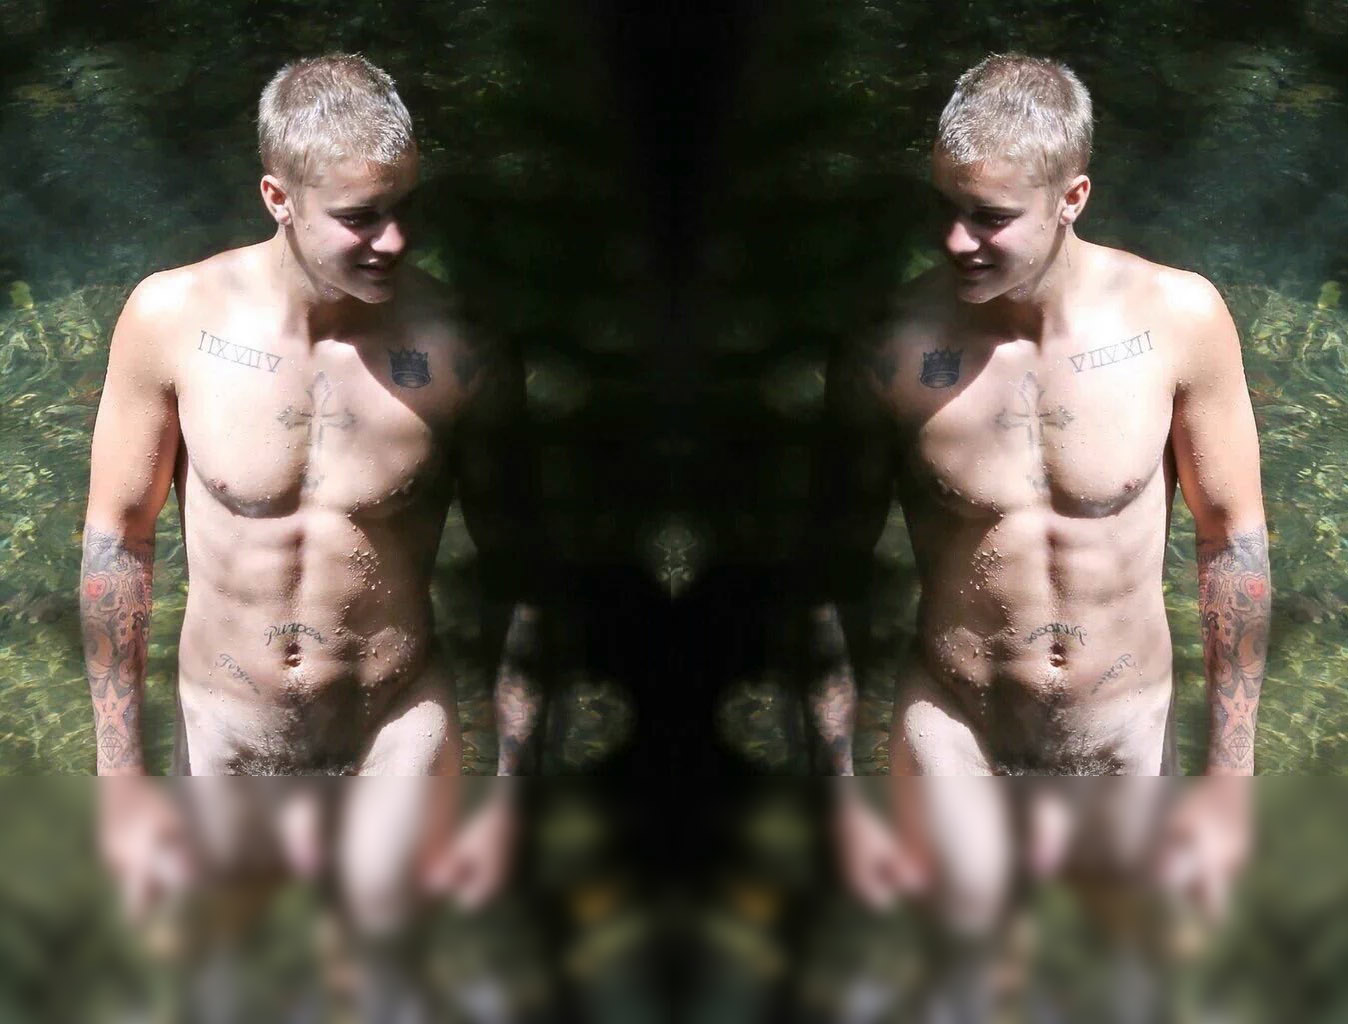 Nude Justin Bieber nudes (18 foto and video), Pussy, Paparazzi, Boobs, butt 2020